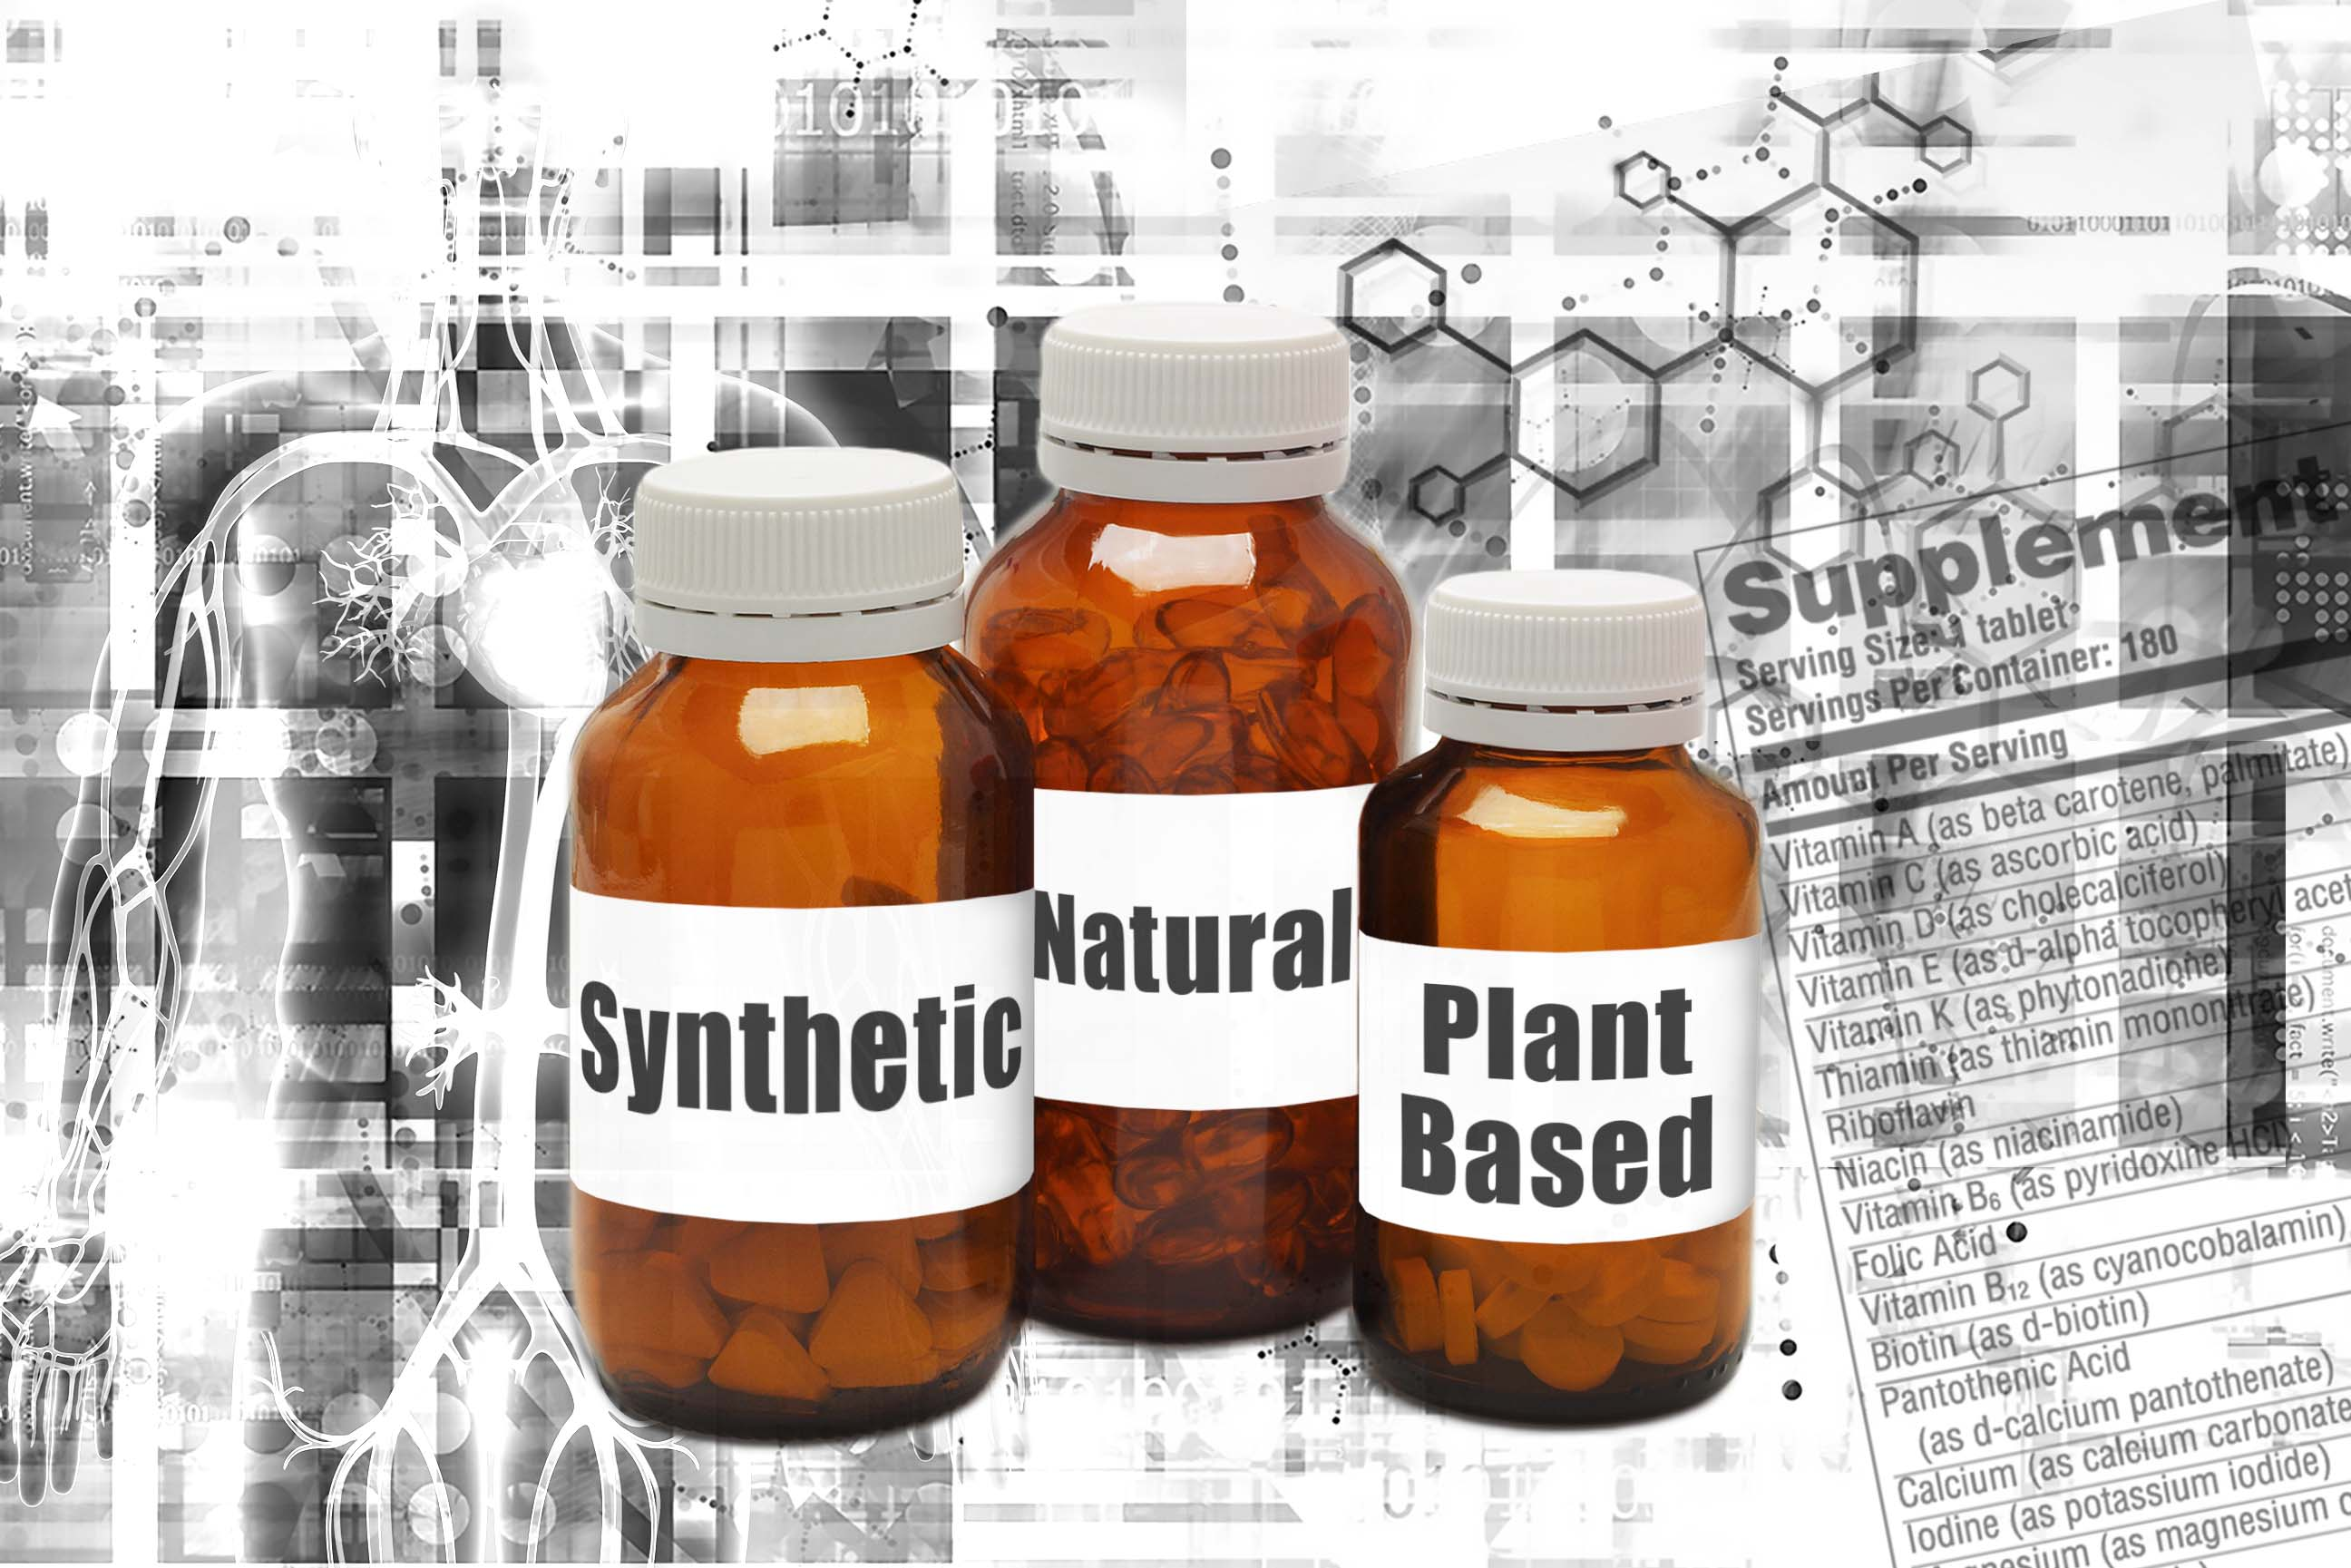 Glass amber bottles containing synthetic, natural, and plant-based vitamins over background of supplement facts and anatomical figure.